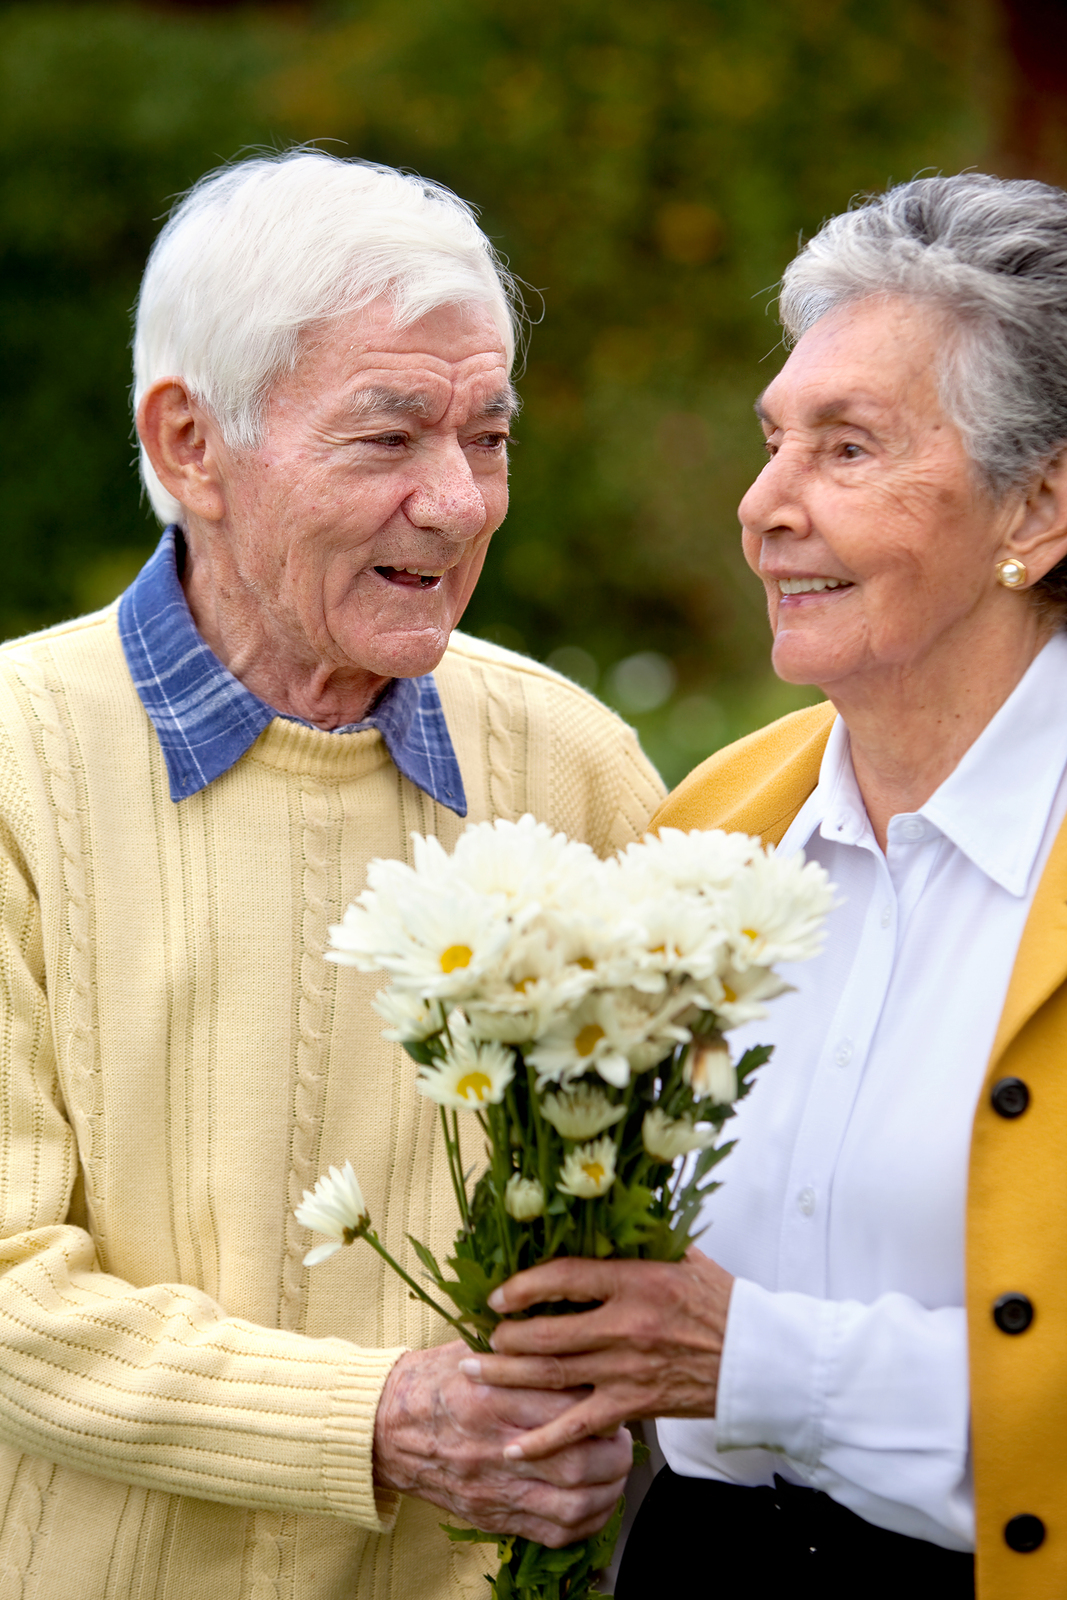 Guidelines For Intimate Relationships Between Residents In Assisted Living Communities